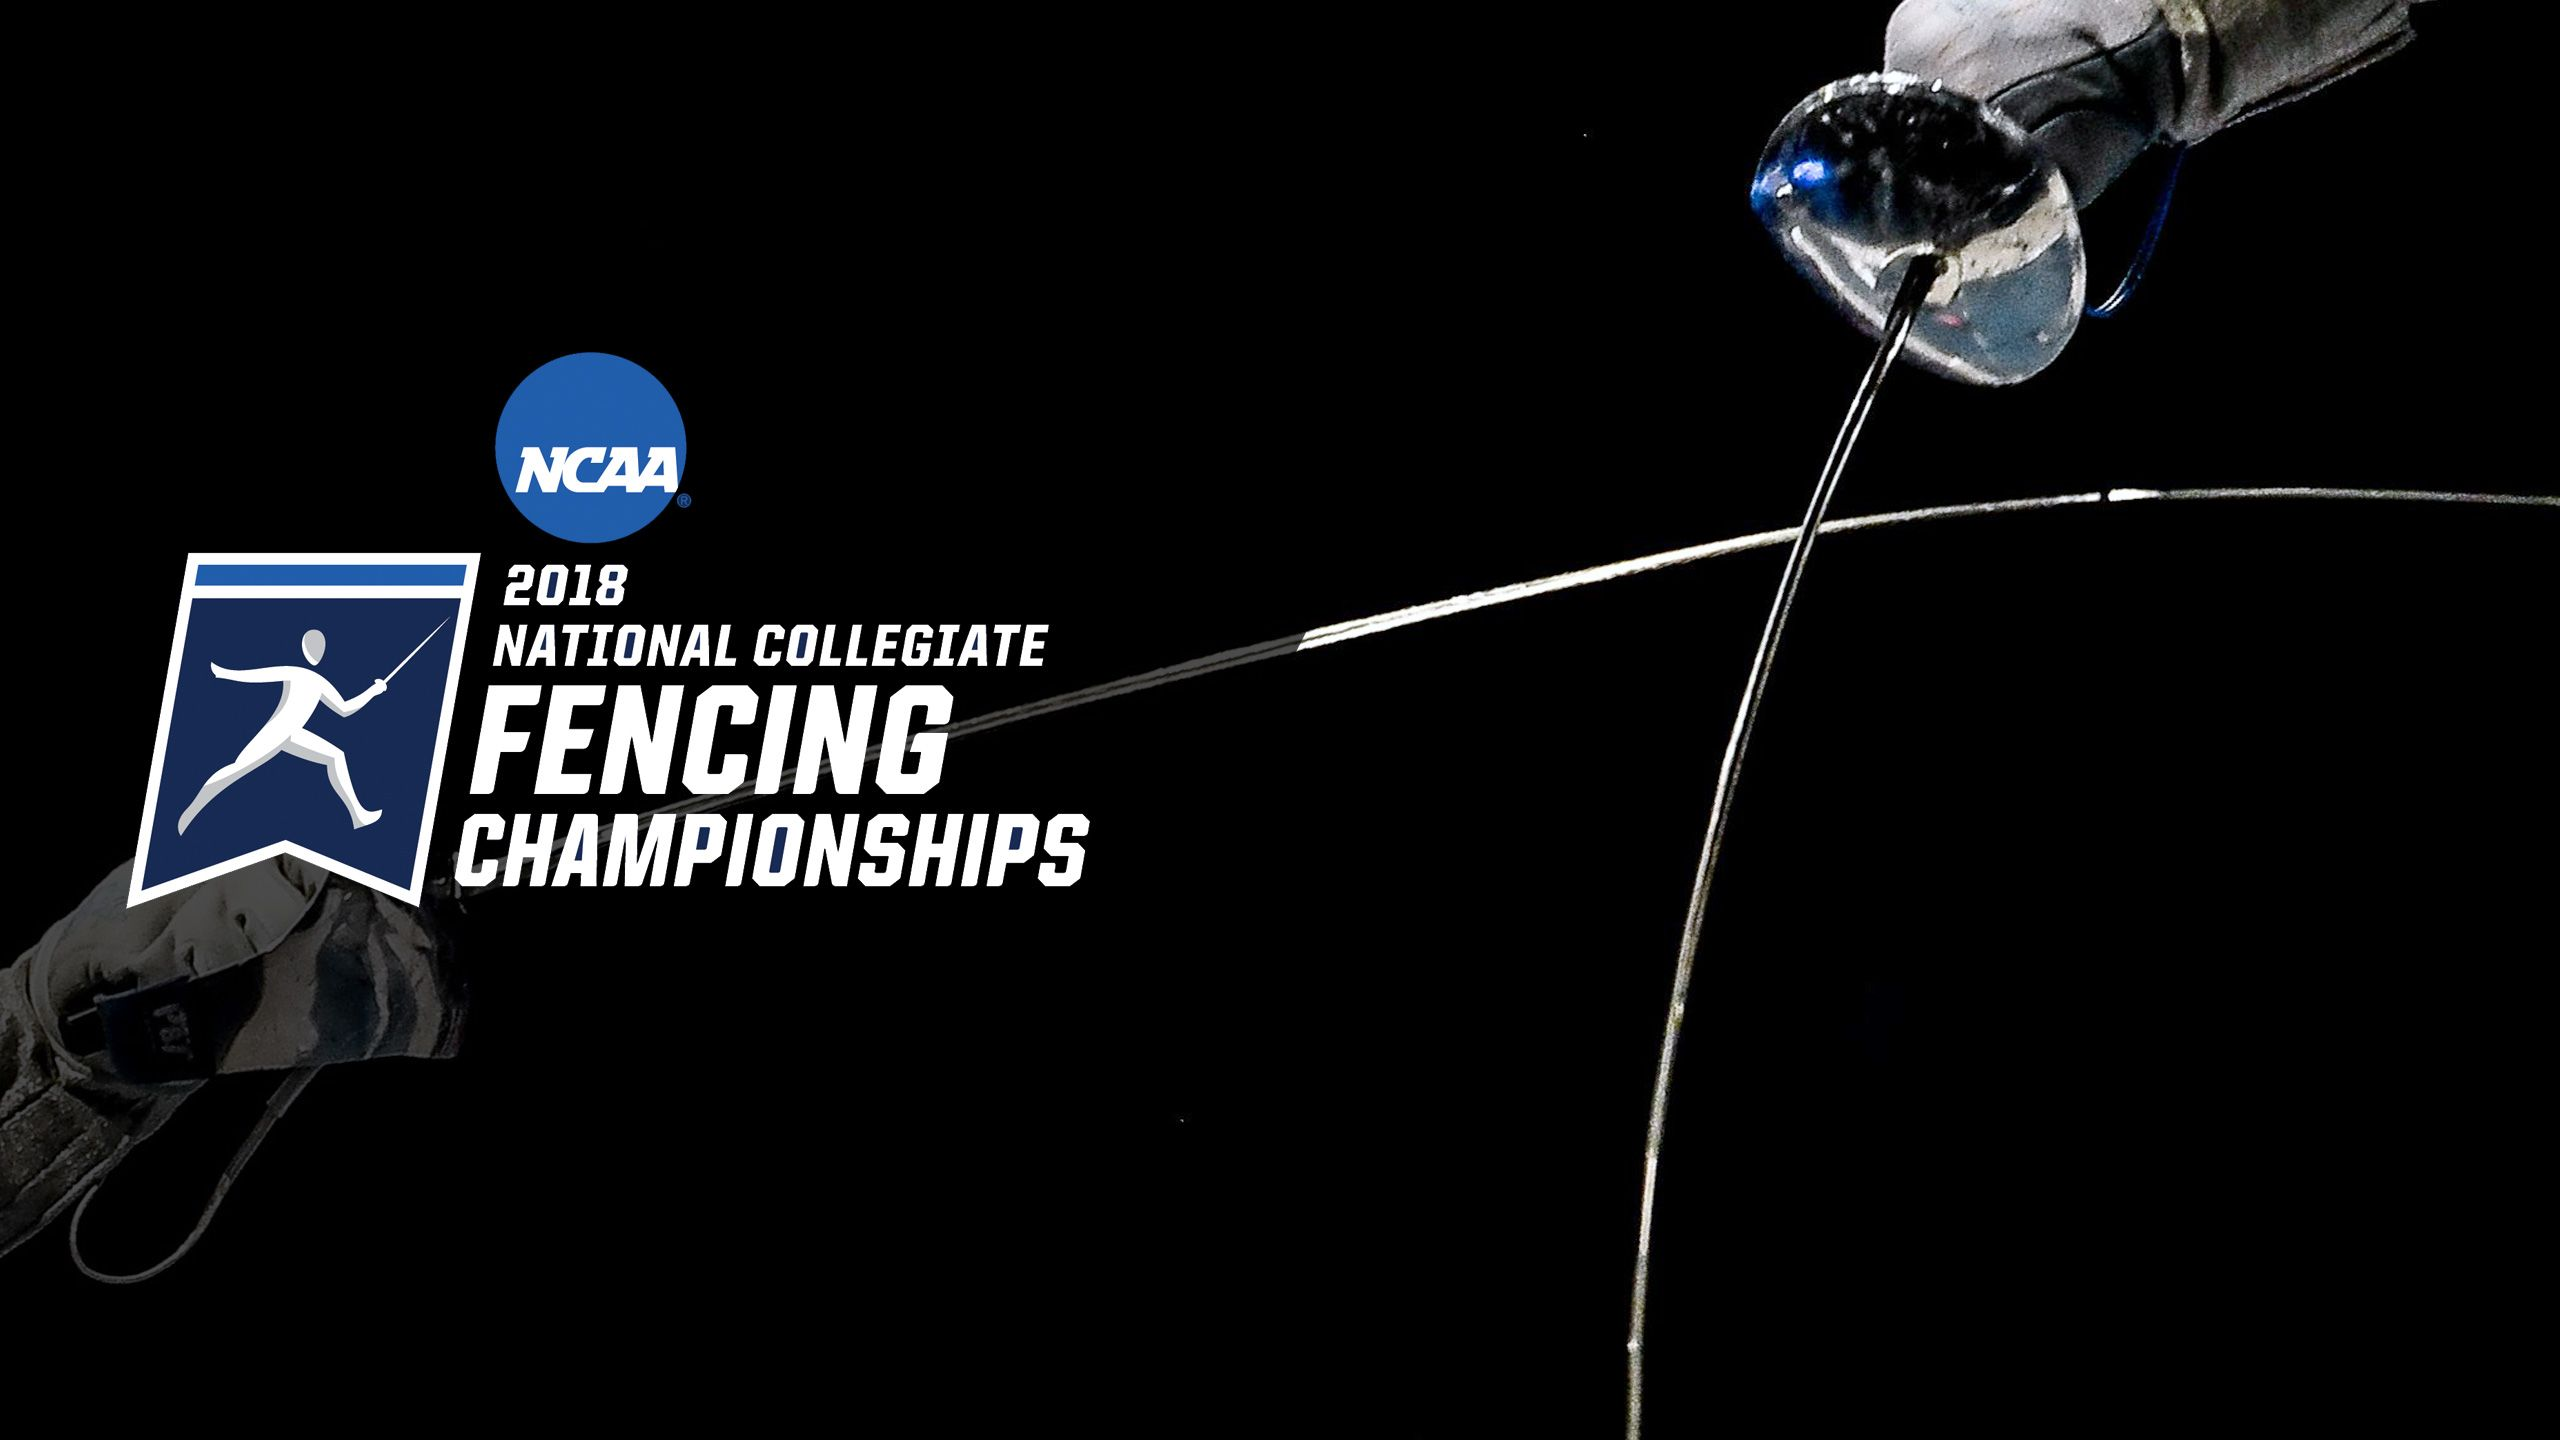 2018 NCAA Fencing Championships (Women's Championship)